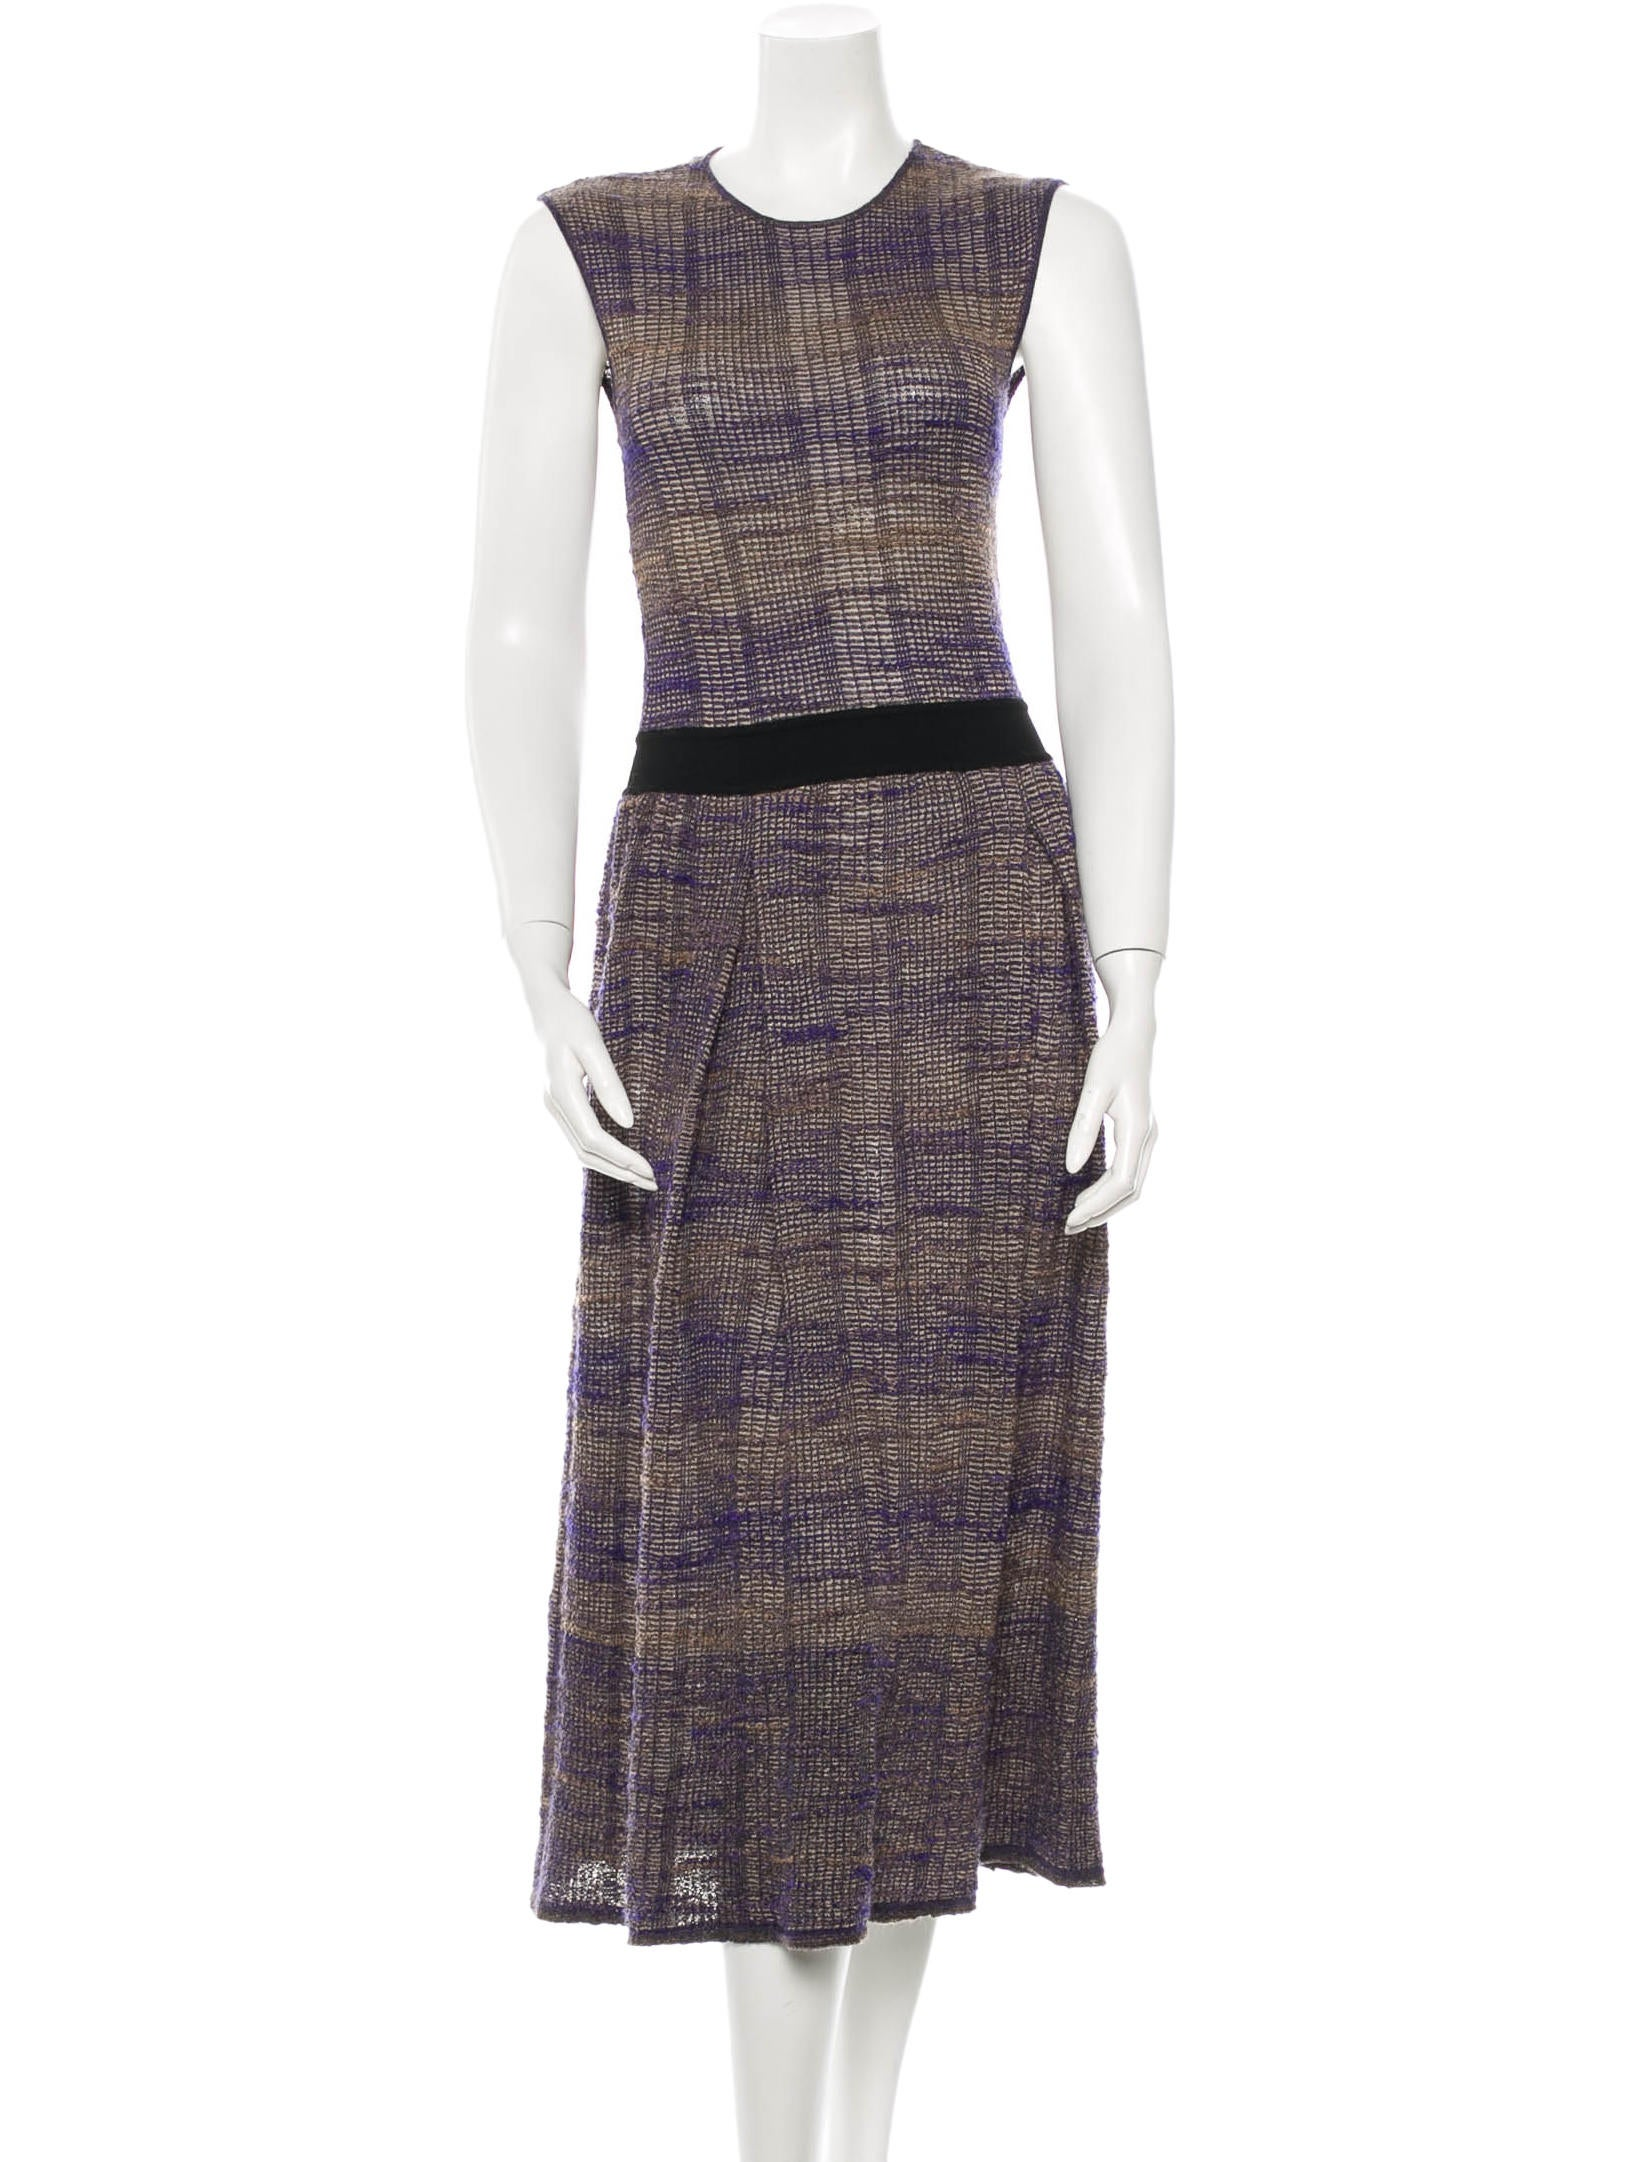 ca58ee39aa2 Tory Burch Nadia Dress - Clothing - WTO40359